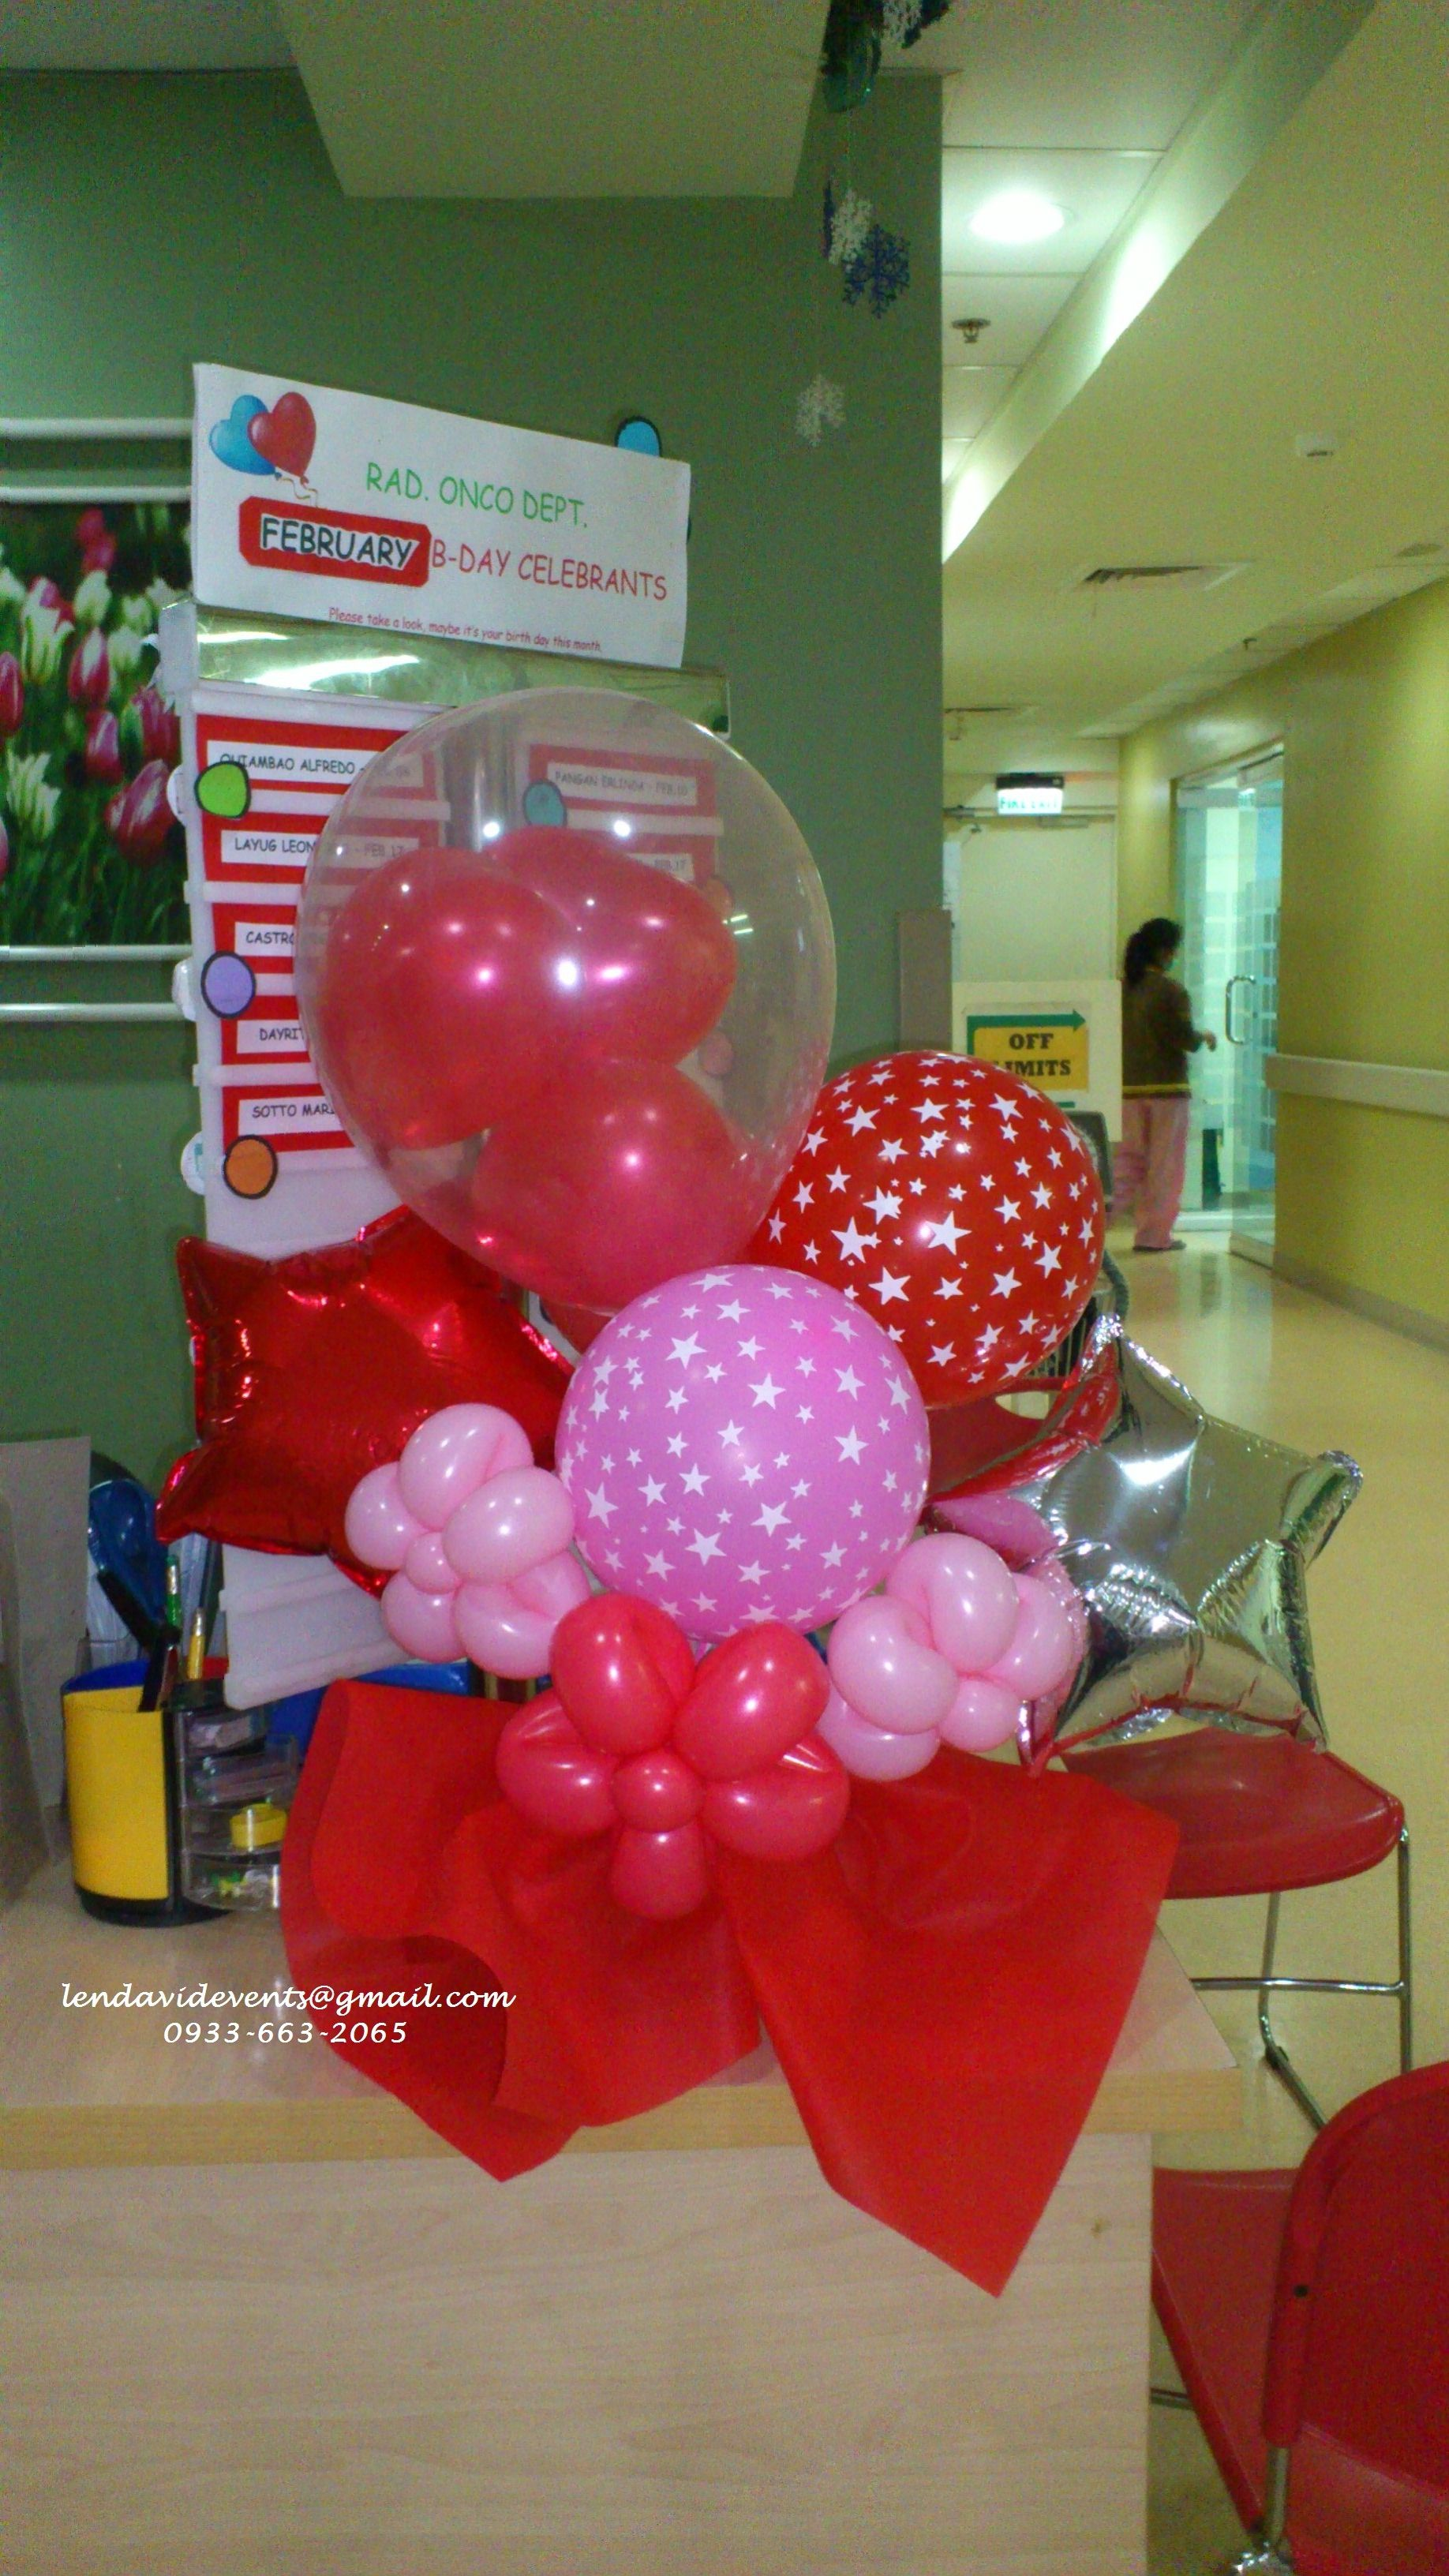 Awesome Valentine Balloon Bouquet by Glam Fantasy Events/ lendavidevents@gmail.com